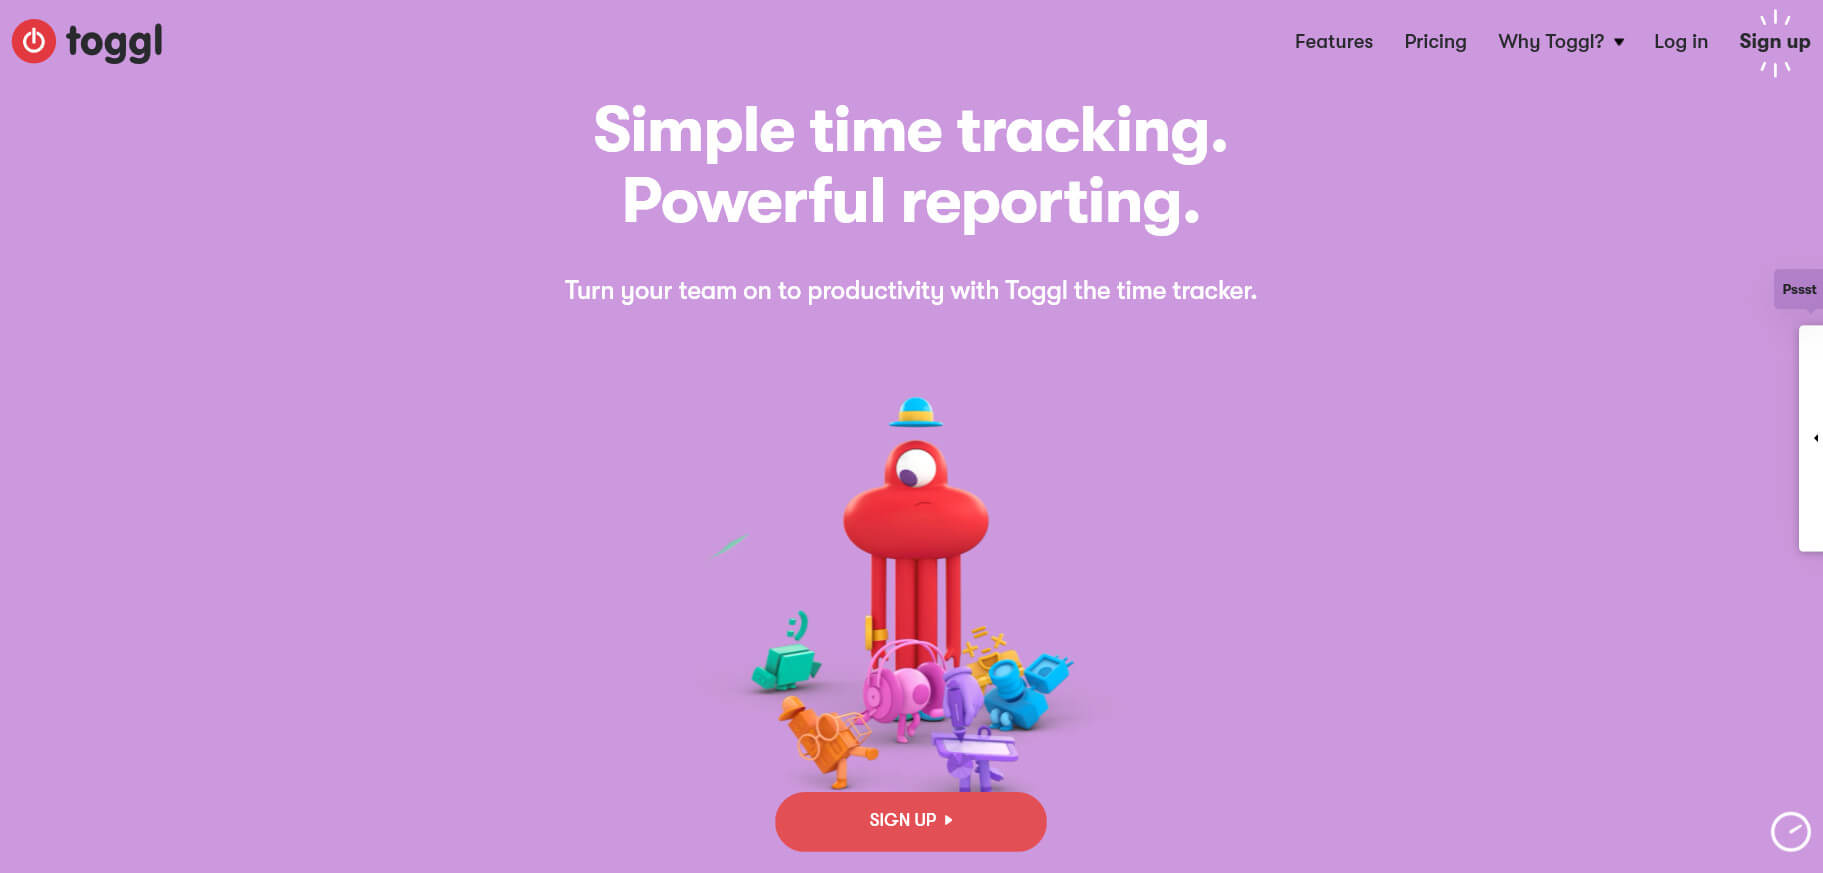 The Toggl homepage.